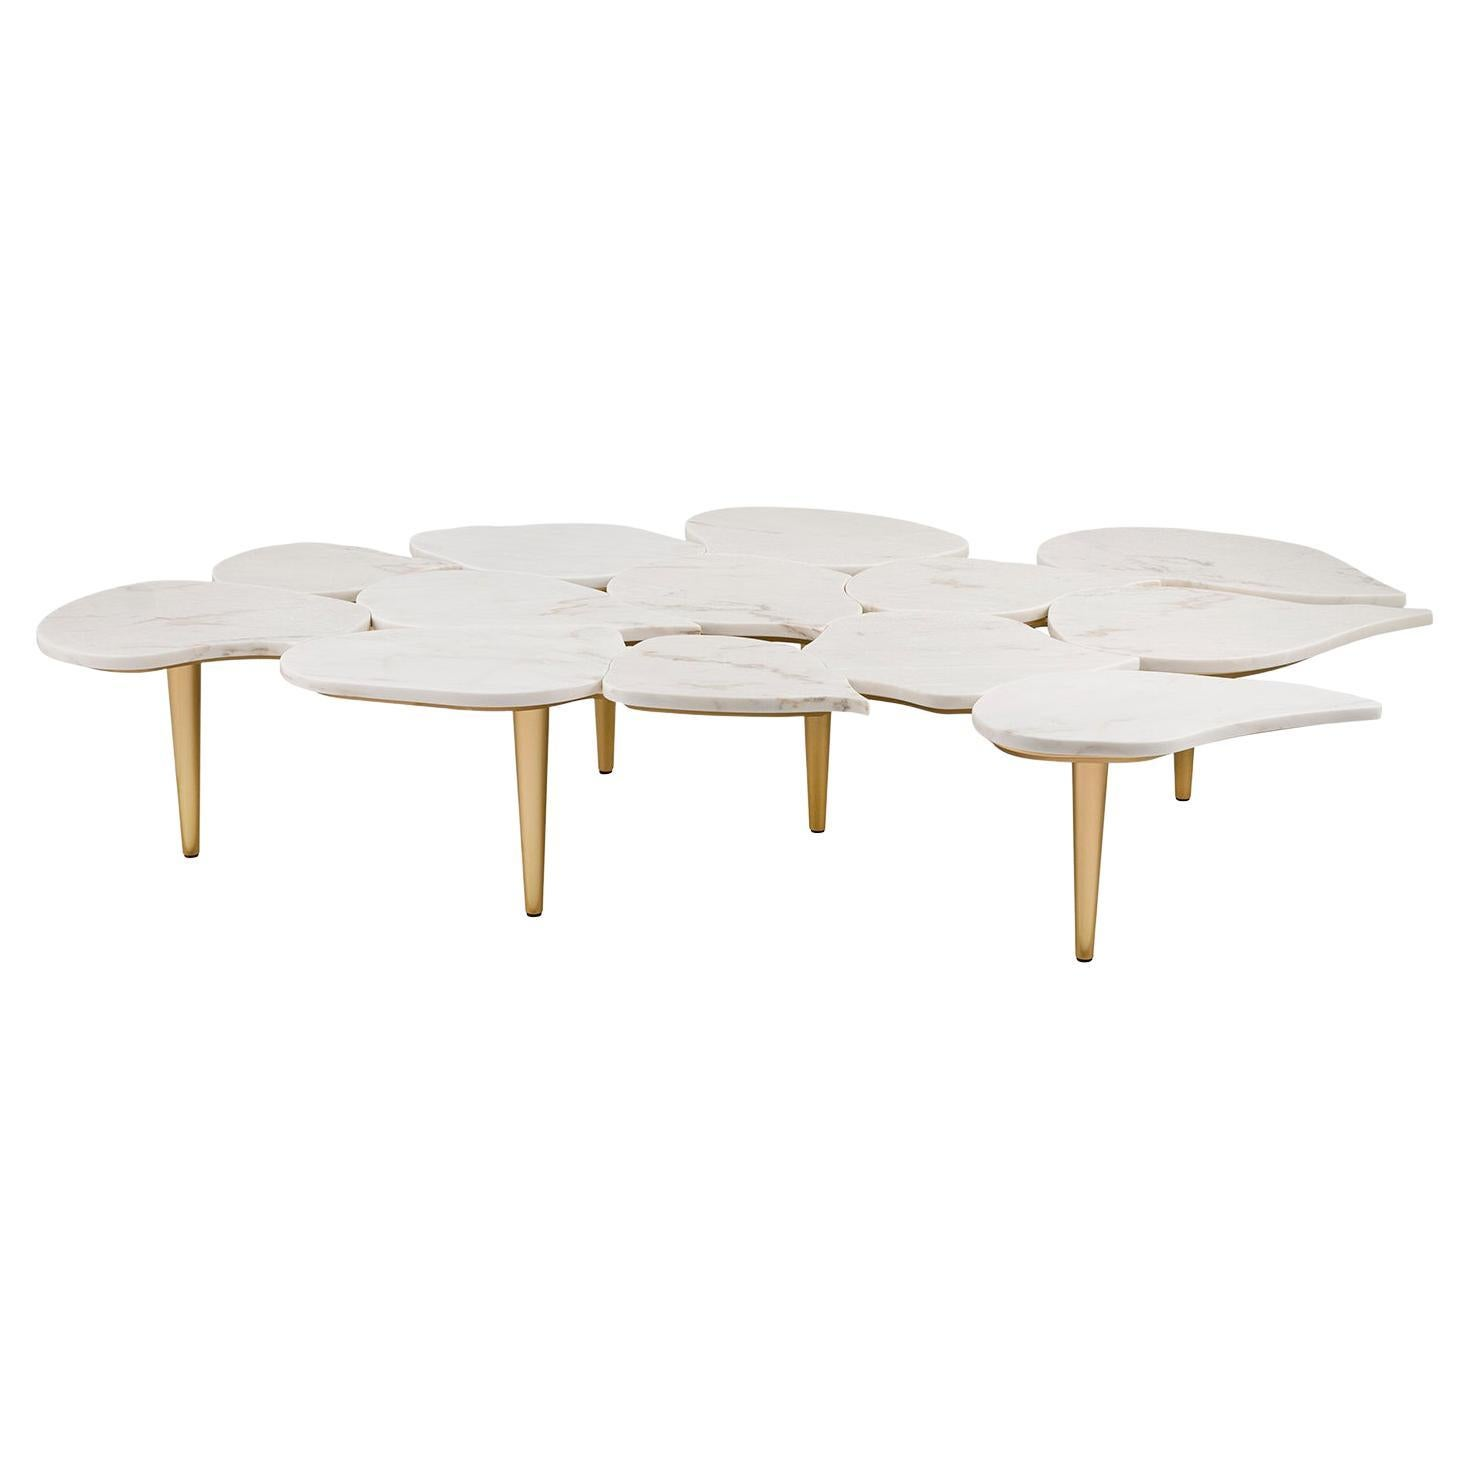 Infinity Coffee Table Large Calacatta Bianco Bronze Powder Gold Lacquered